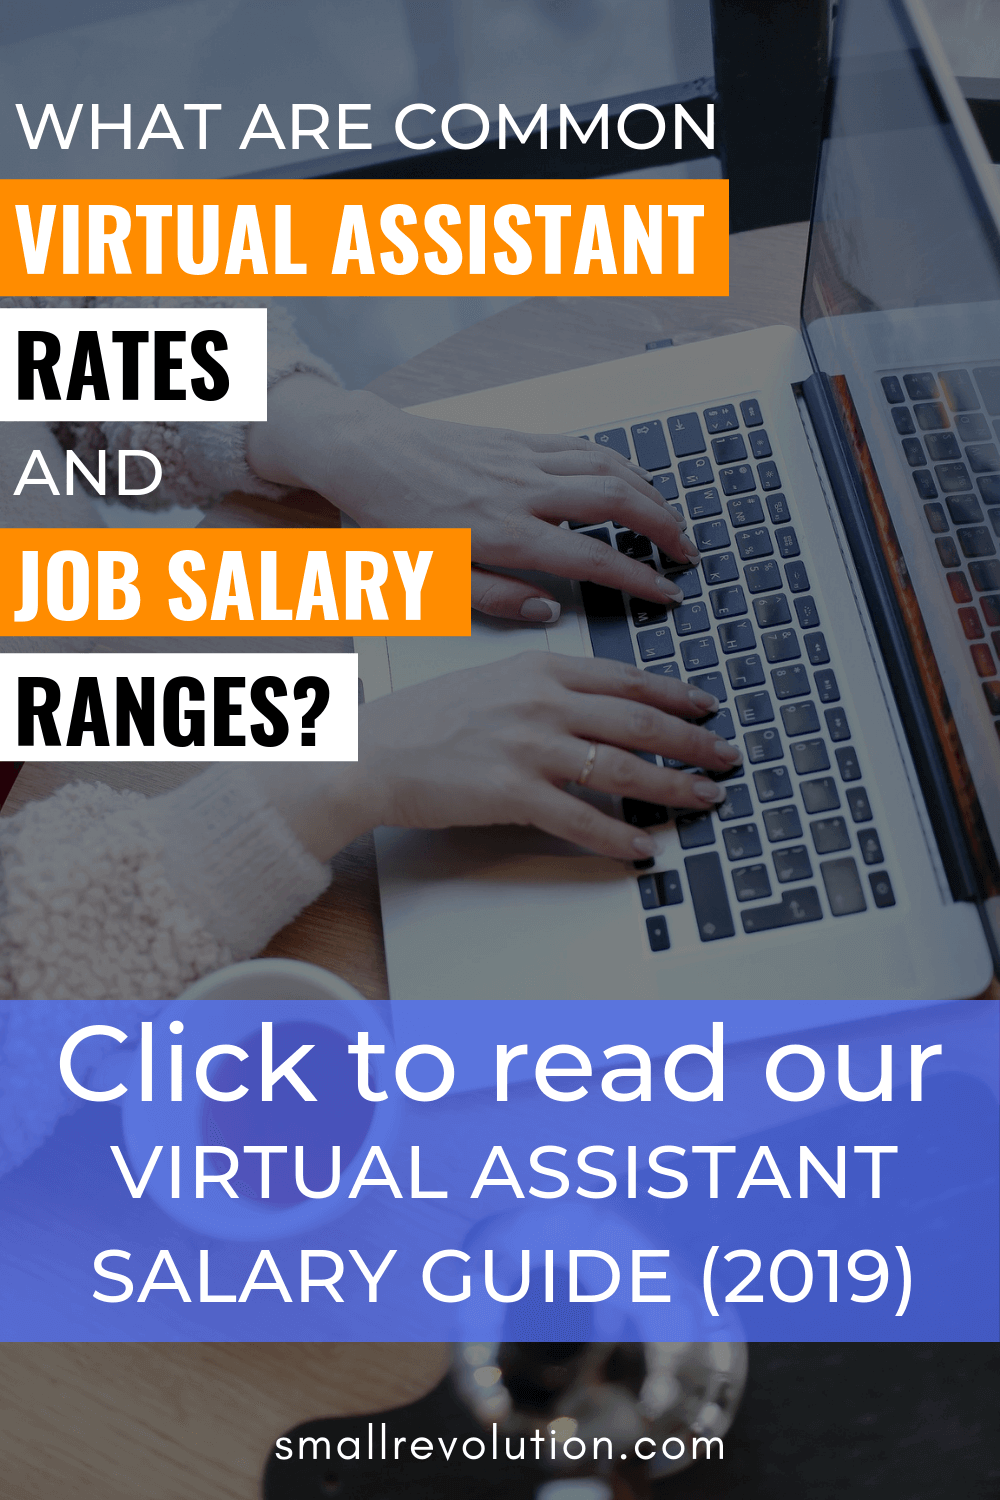 Virtual Assistant Salary: The Definitive Guide (2019